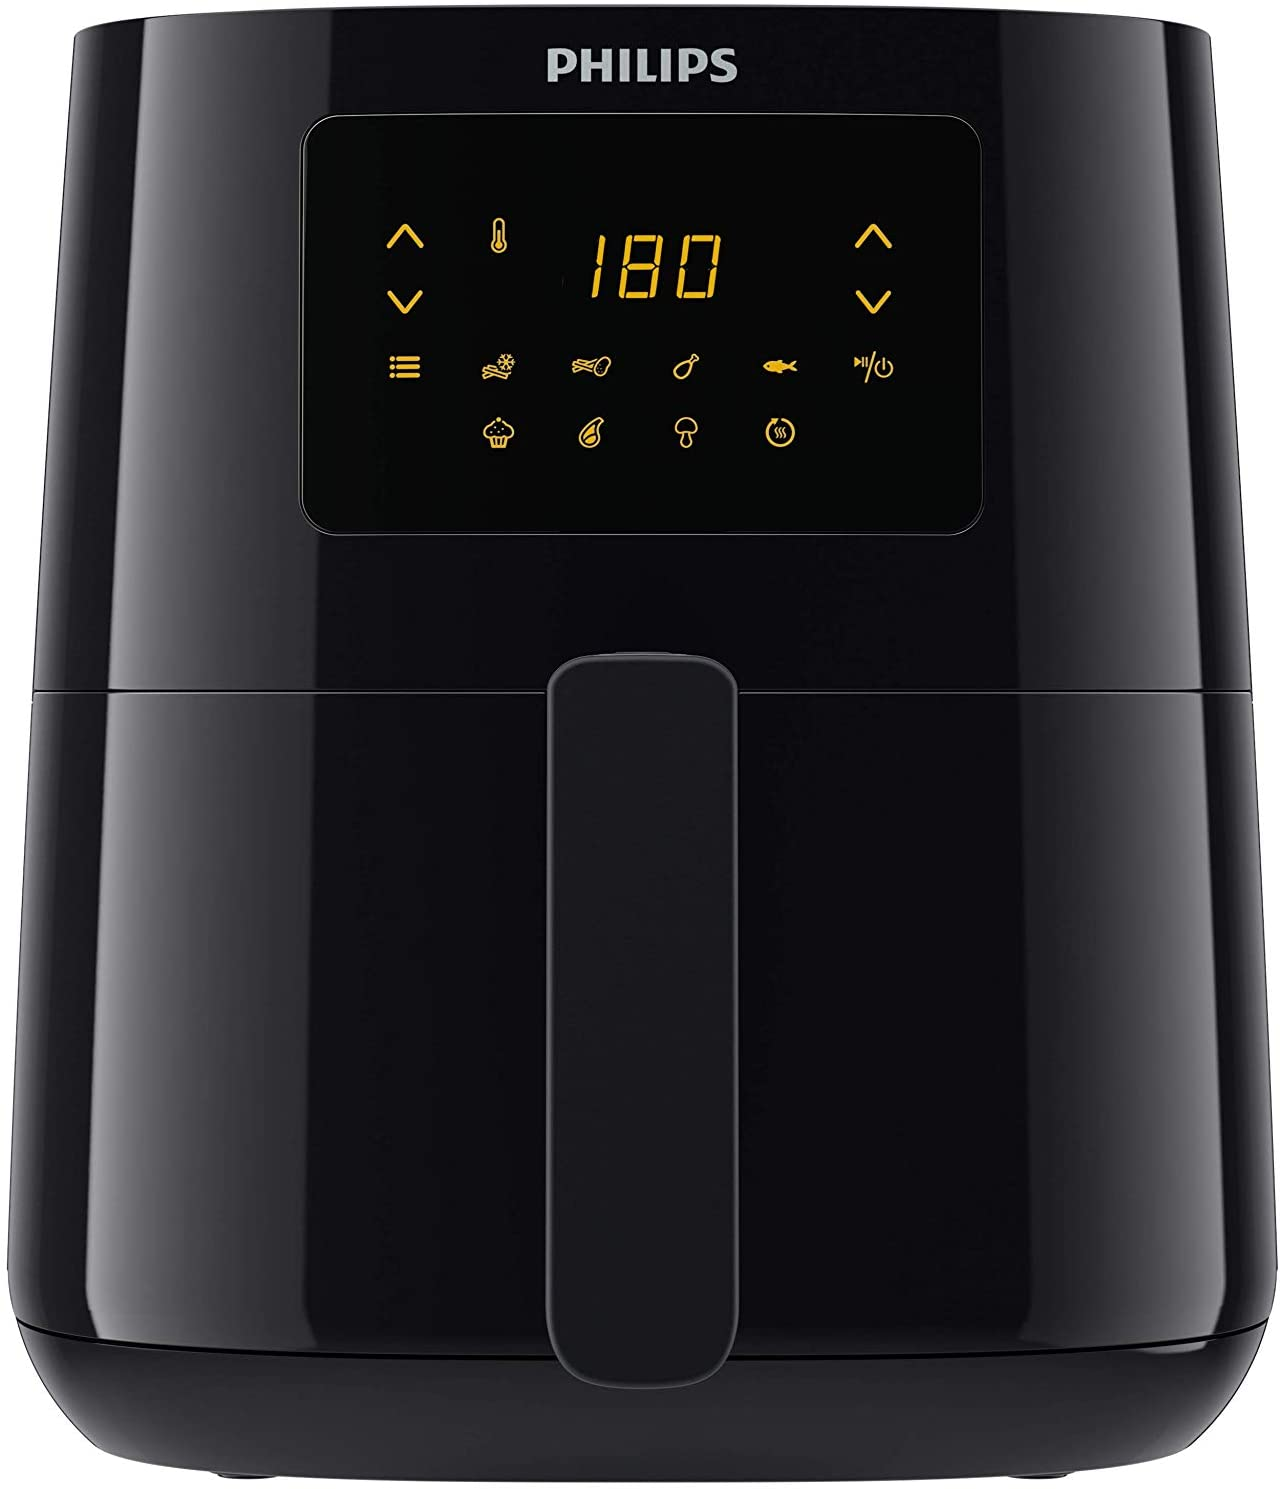 Philips Essential Compact Digital Airfryer